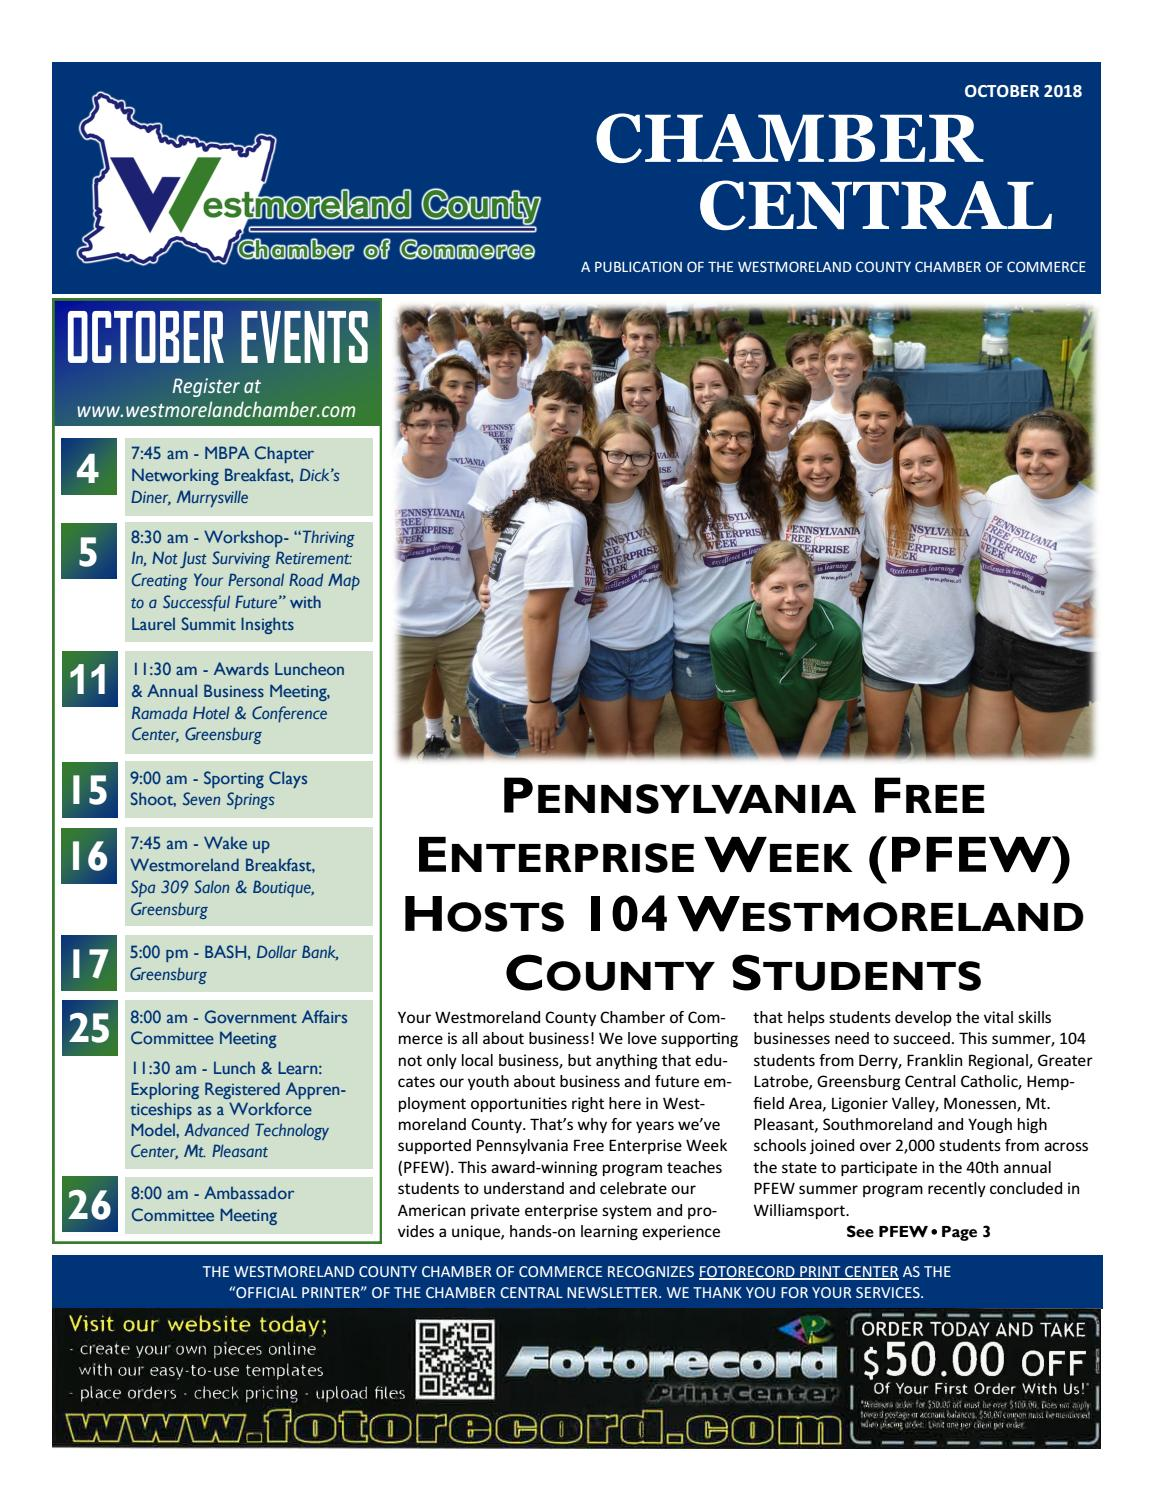 Chamber Central Newsletter October 2018 by Westmoreland County